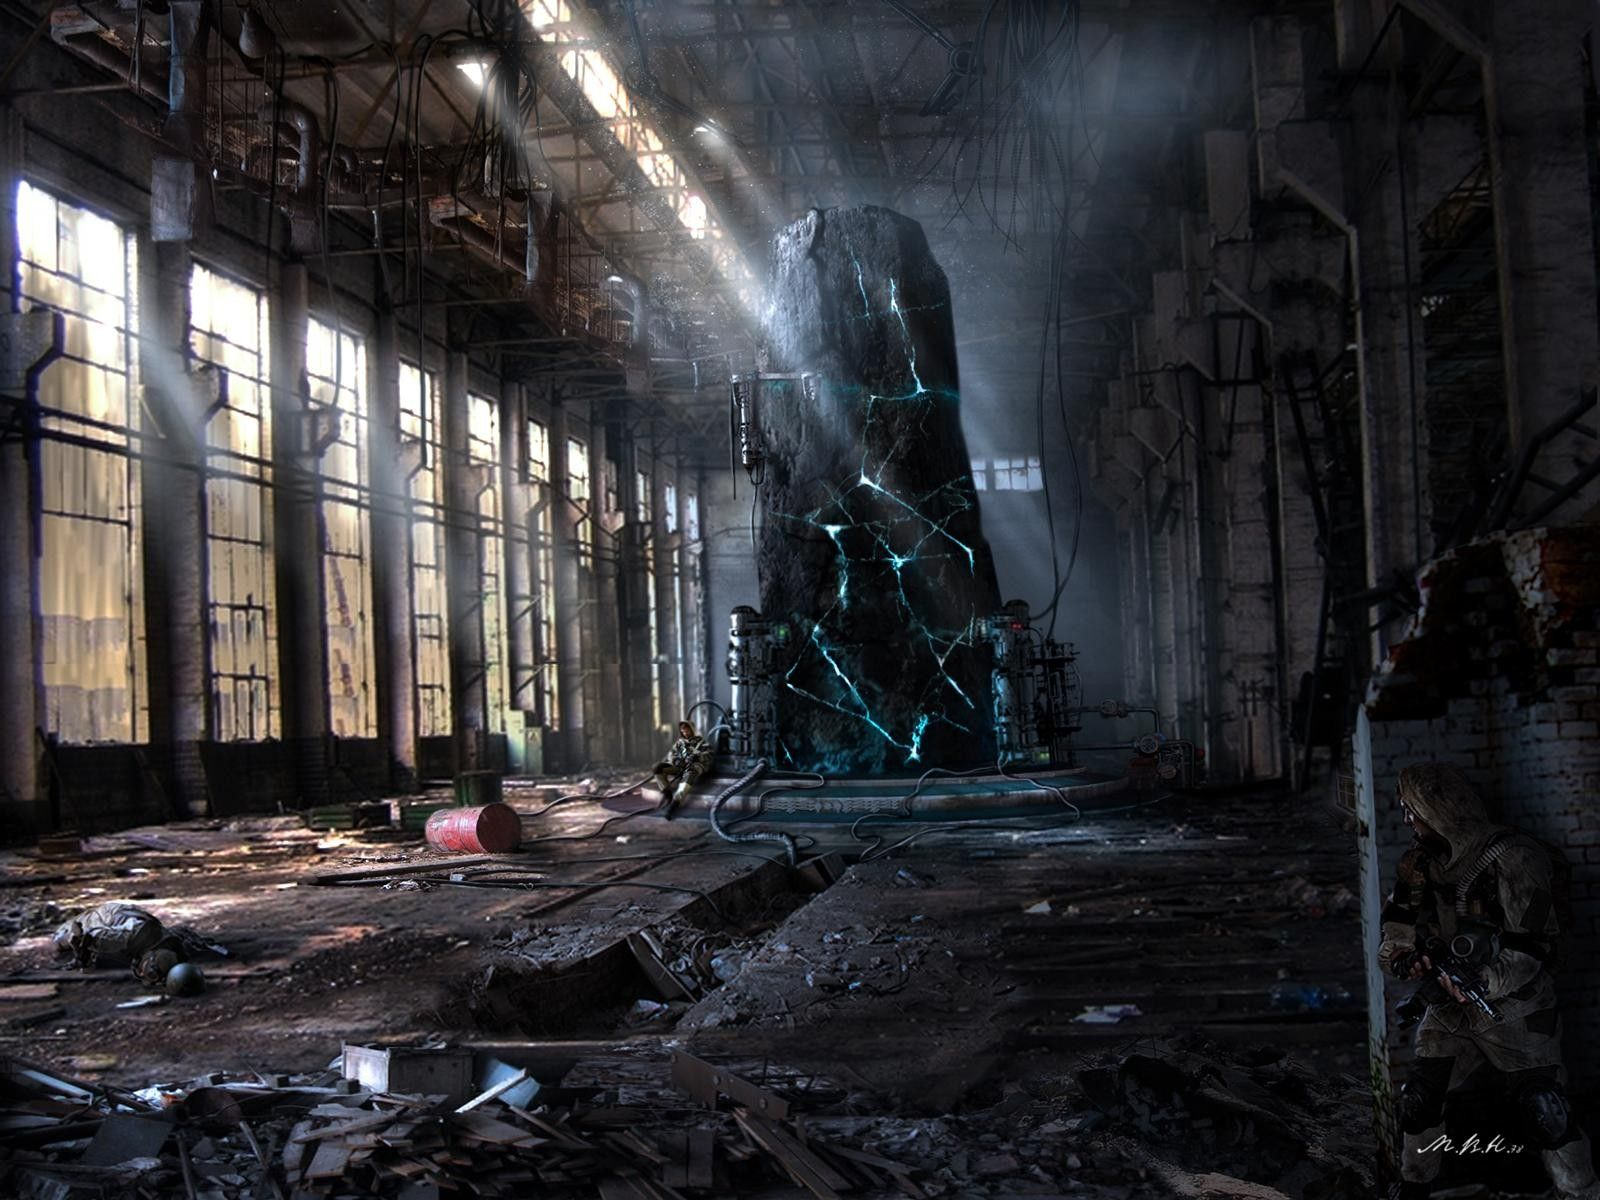 Video Games Shadow Of Chernobyl Apocalyptic S T A L K E R Monolith Chernobyl Wallpaper Post Apocalypse Apocalypse Landscape Apocalyptic